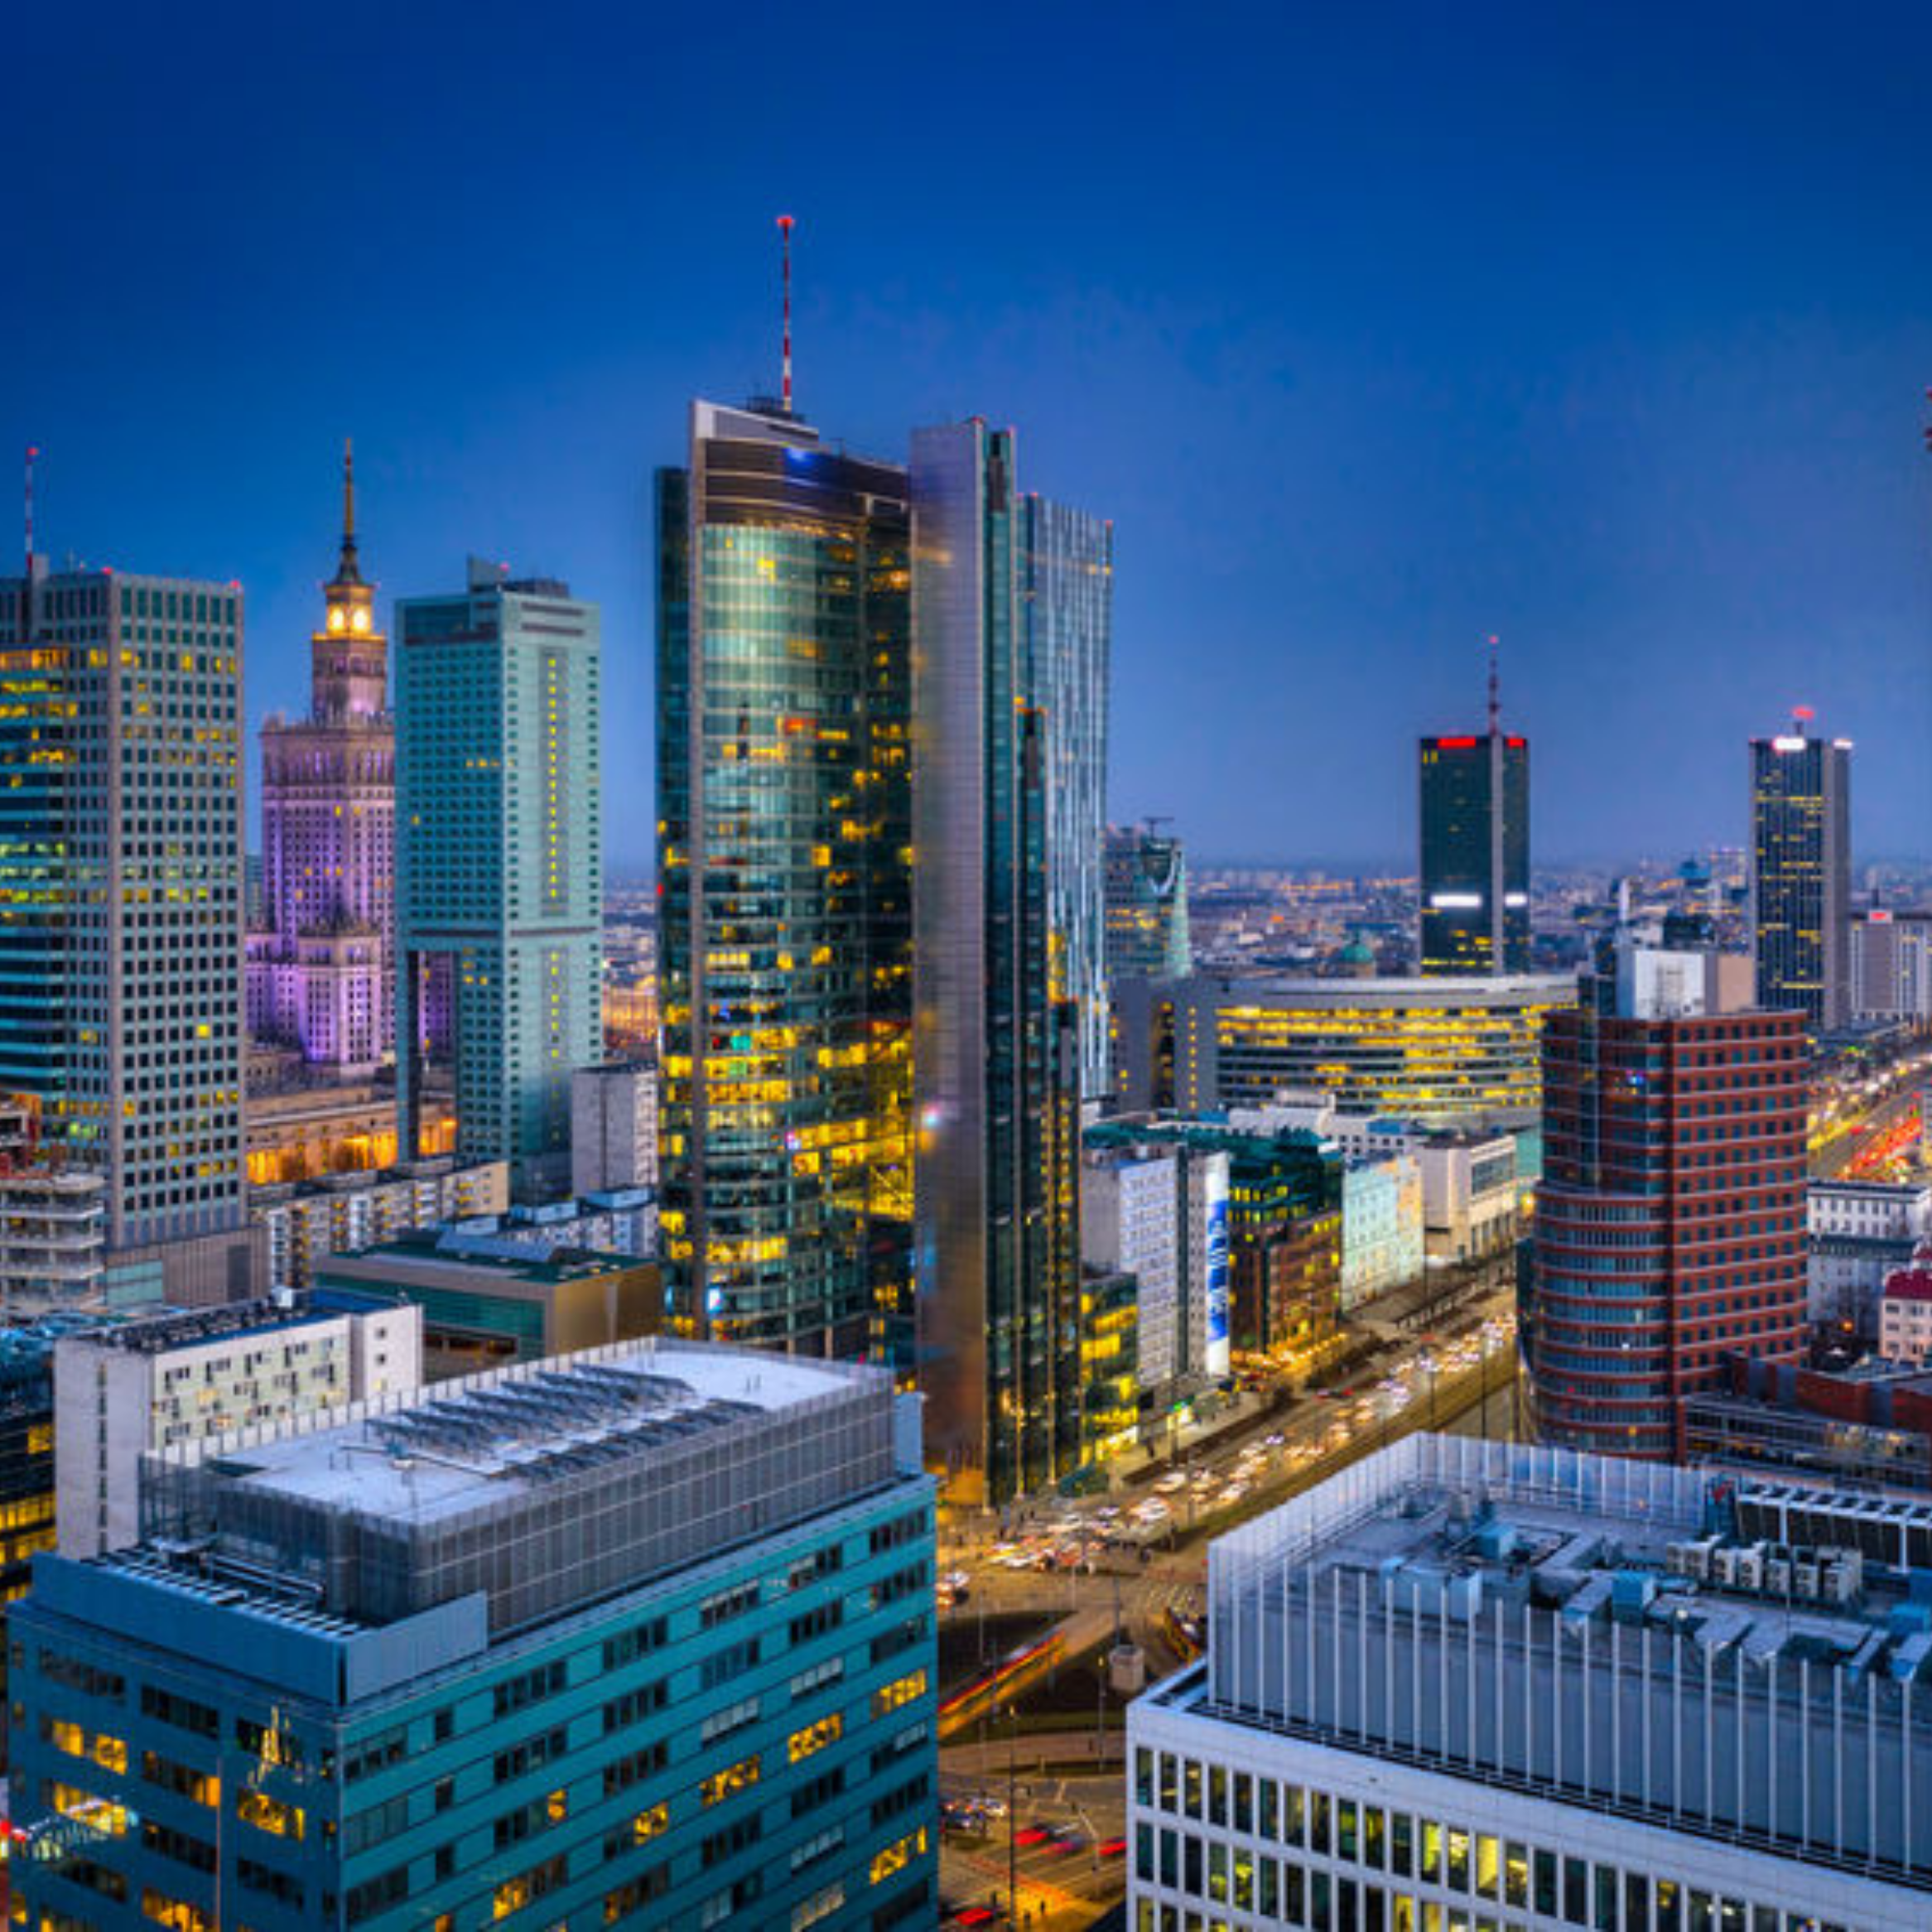 Deka Immobilien fund buys Malthouse Offices, the biggest office building ofthe Warsaw Brewery complex, aswell asthe historic Malthouse